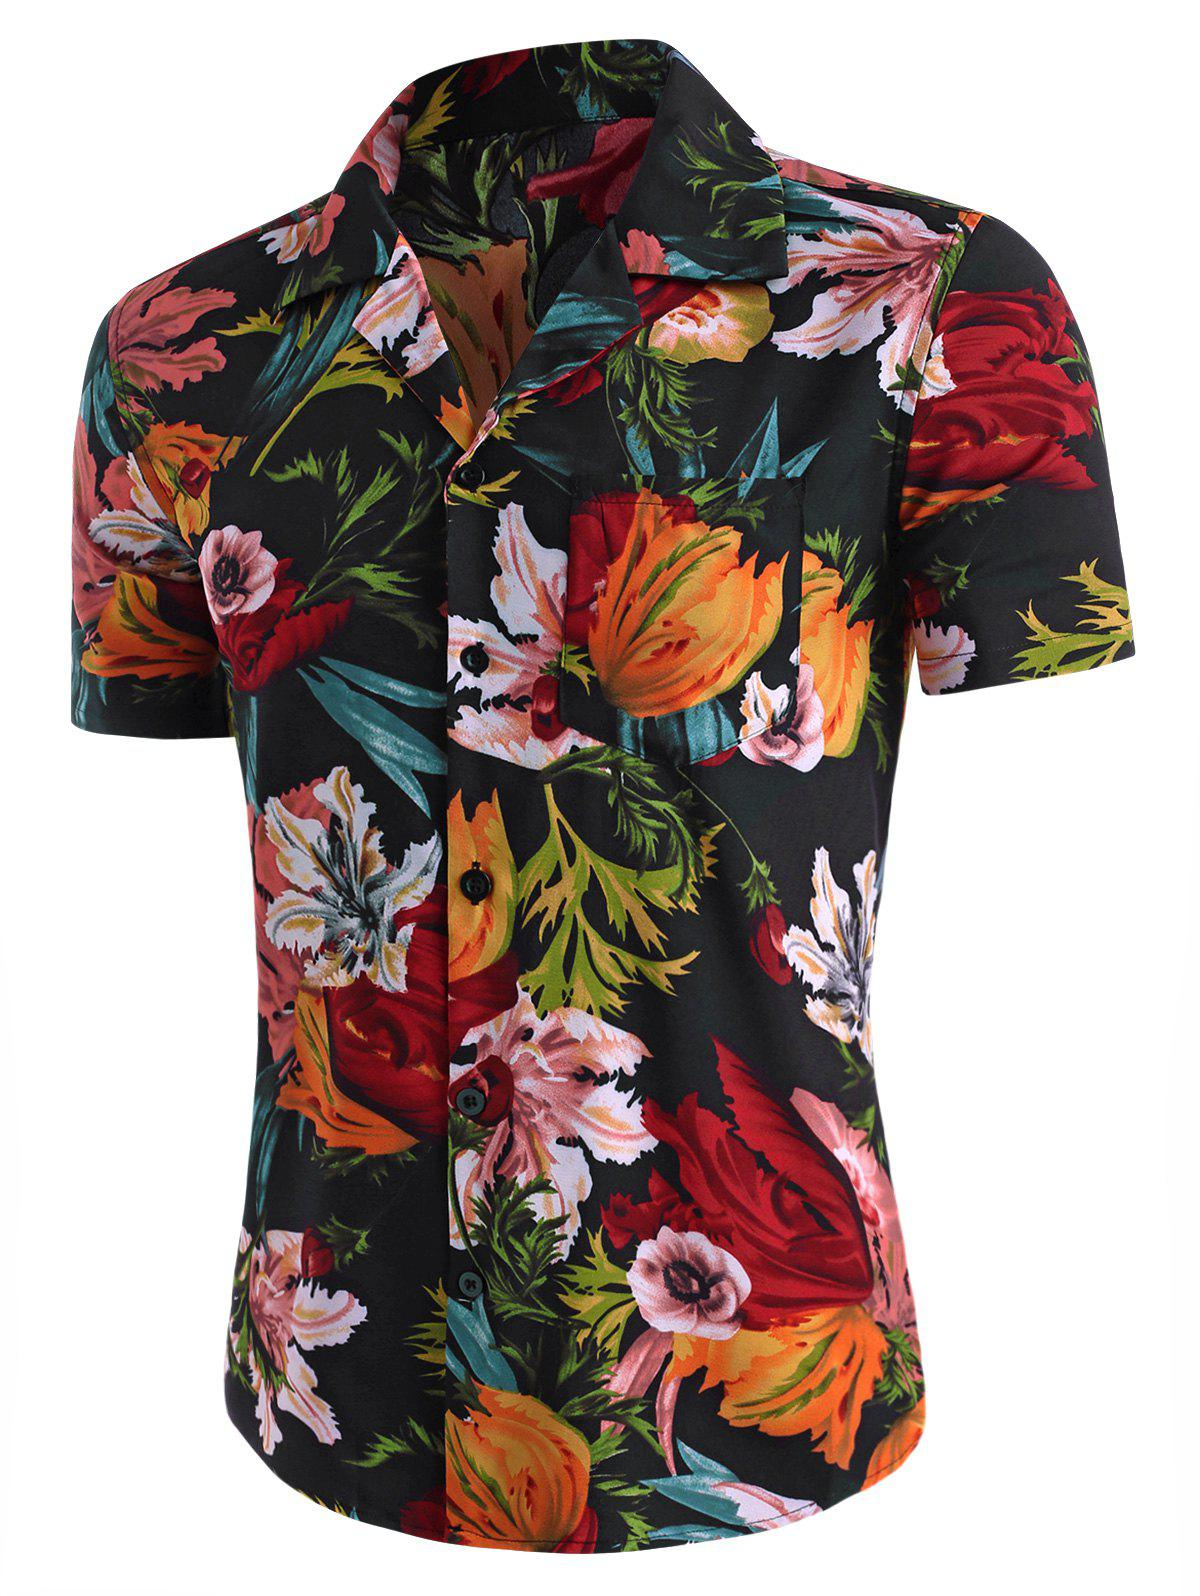 Online Flower Print Pocket Beach Shirt